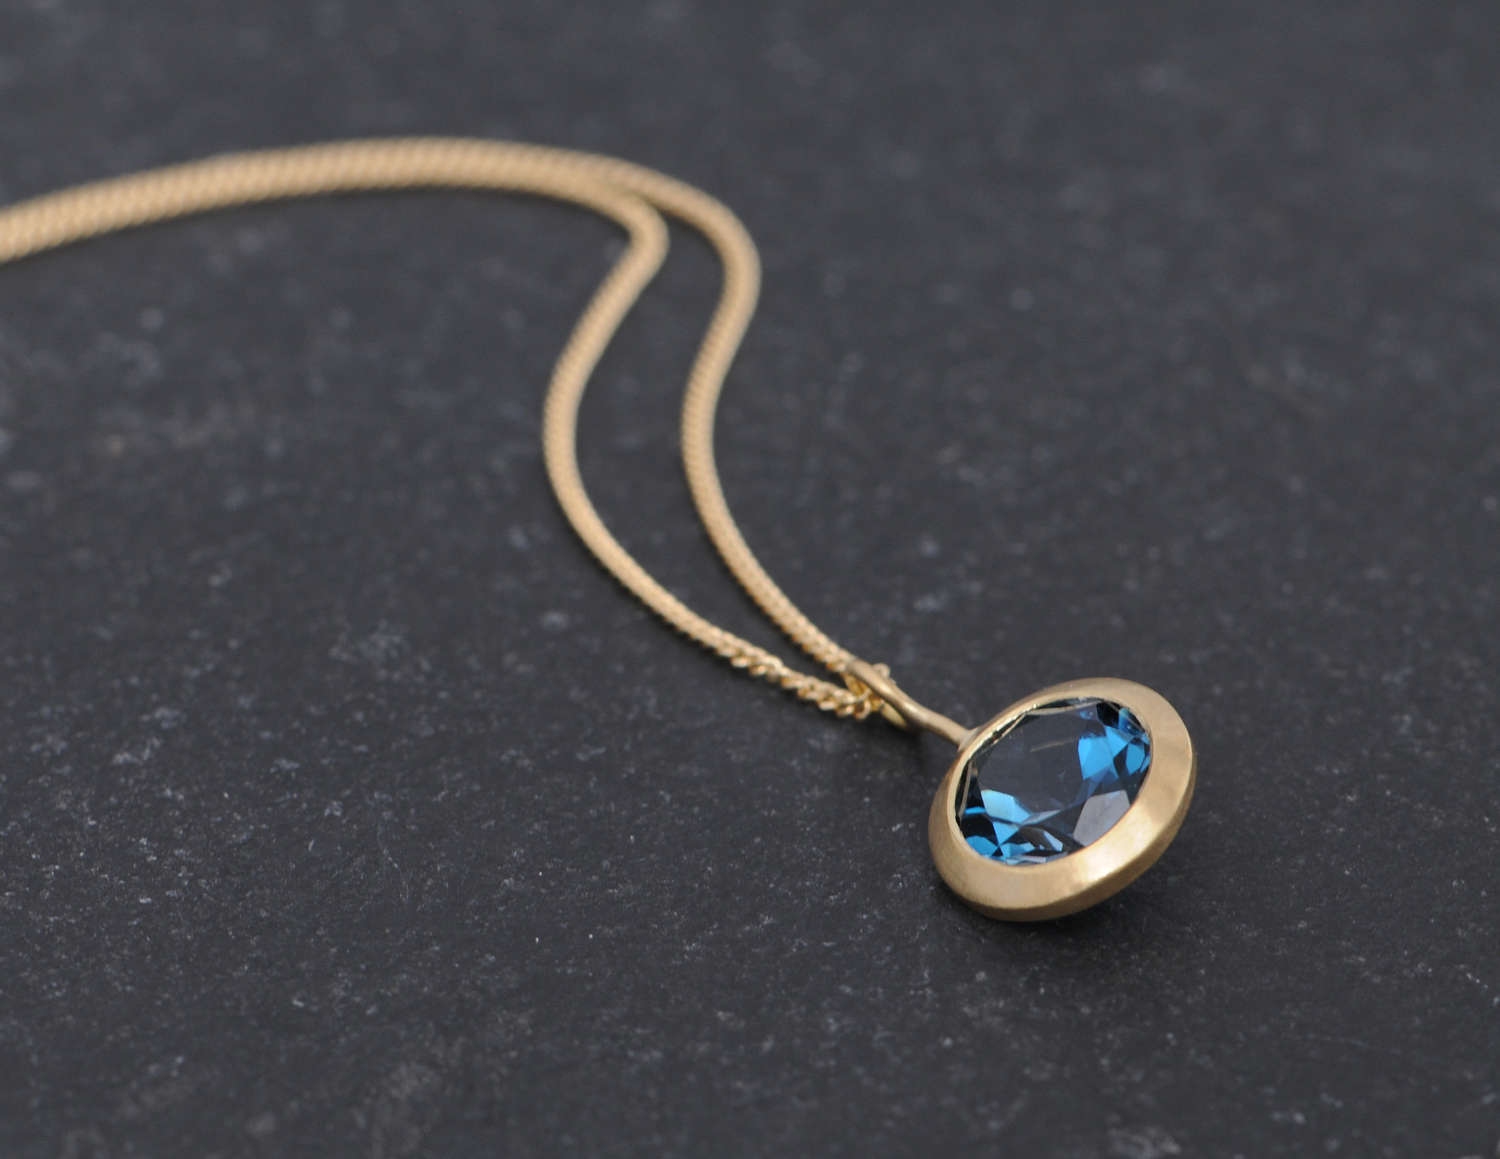 London blue topaz lollipop necklace in 18k gold william white bright london blue topaz pendant set in recycled gold on a gold chain this aloadofball Gallery